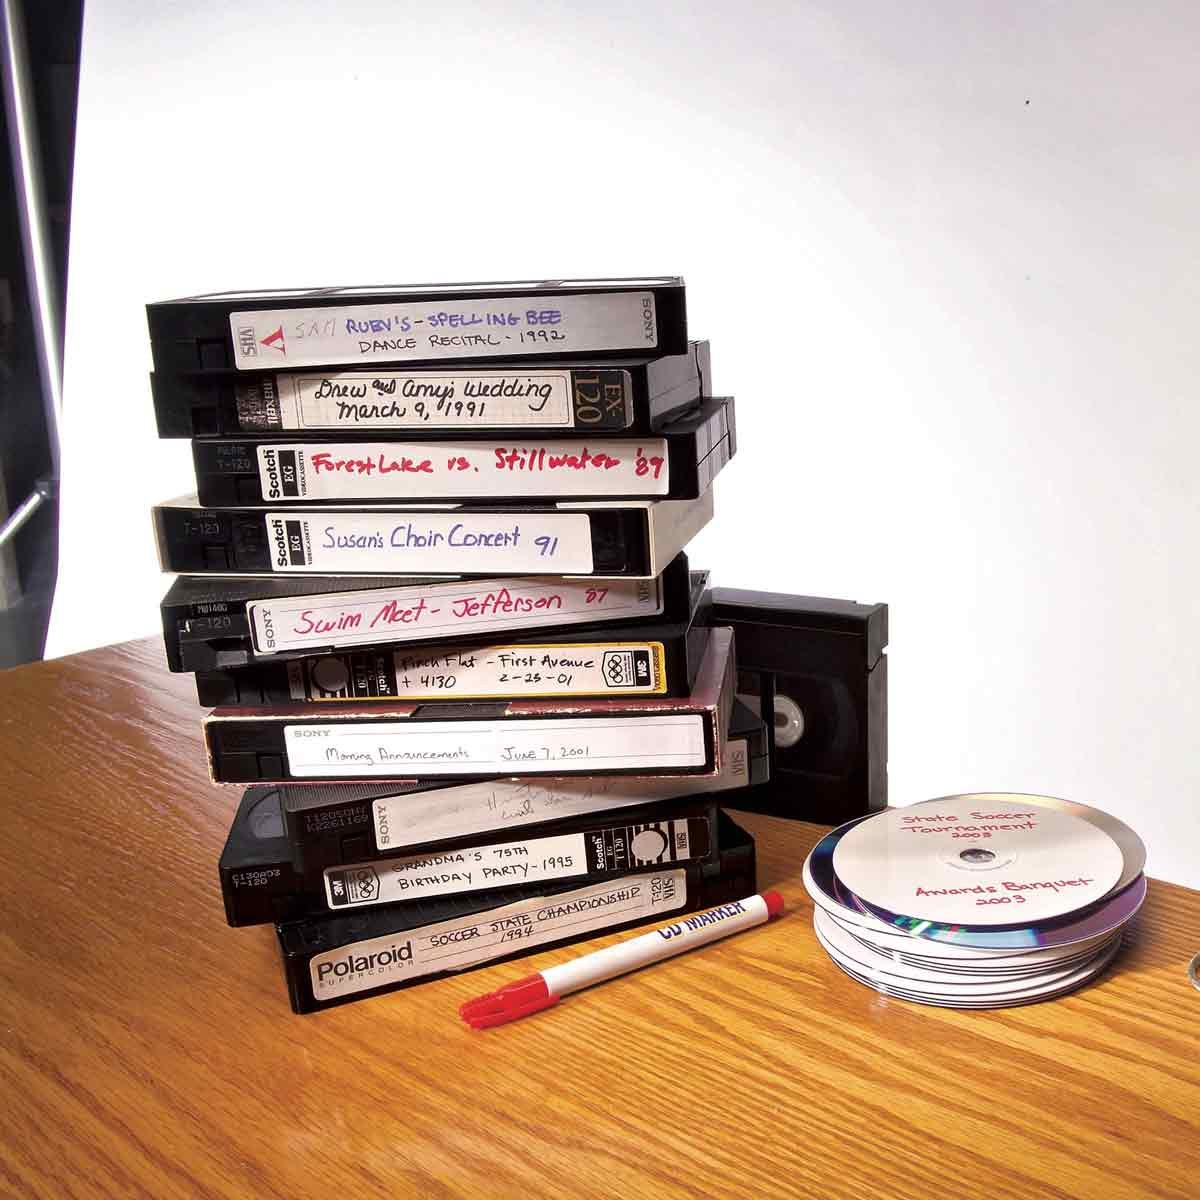 VHS taps and DVDs